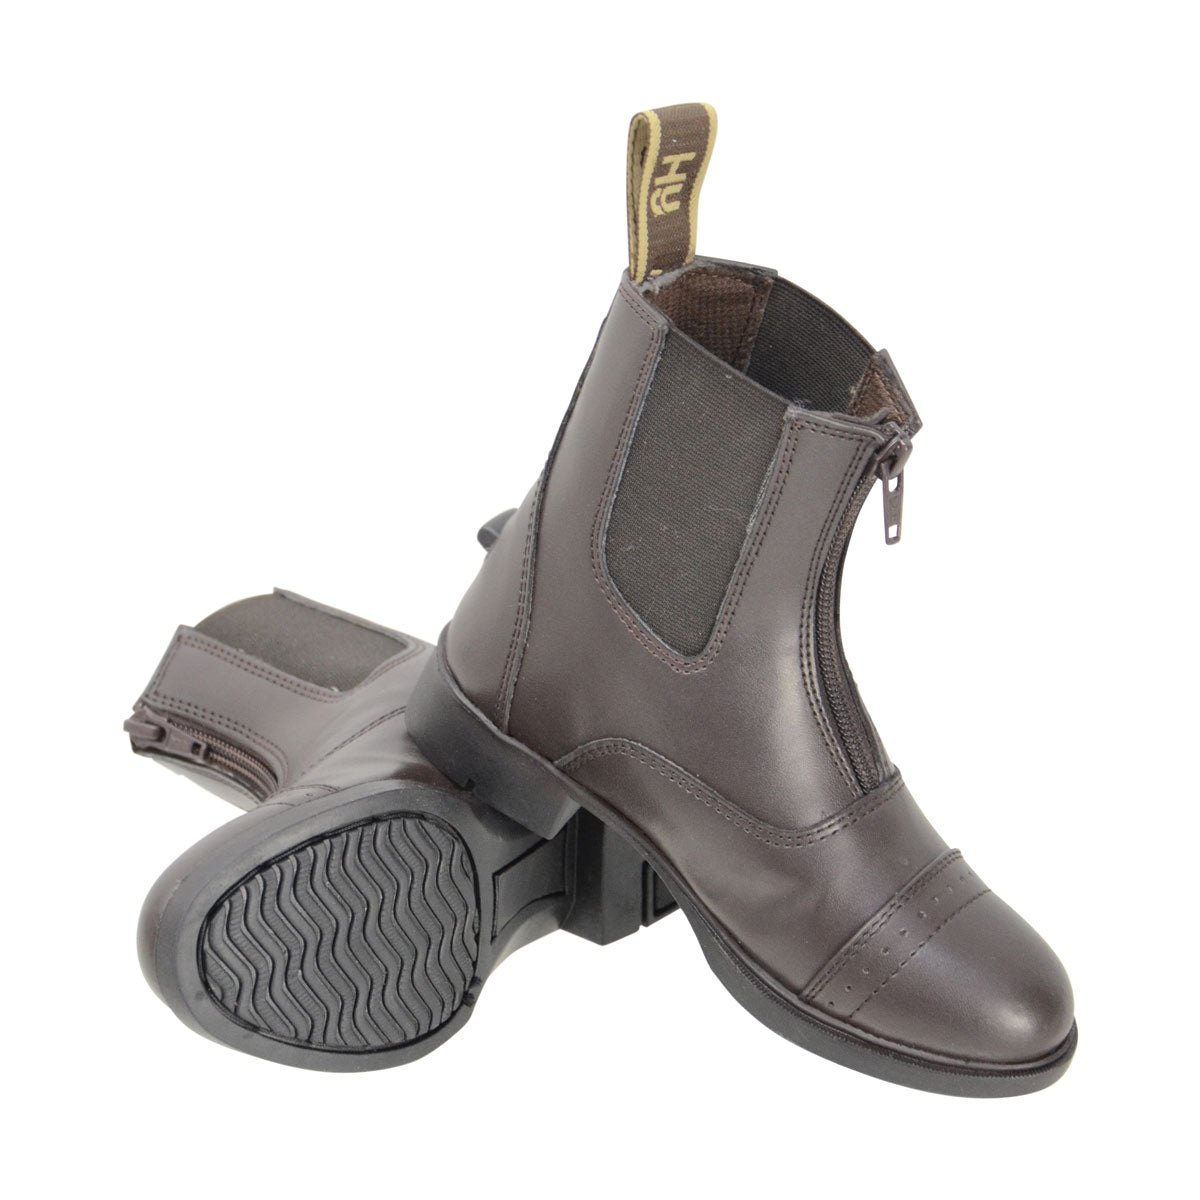 HyLAND York Synthetic Zip Jodhpur Boots - Childs